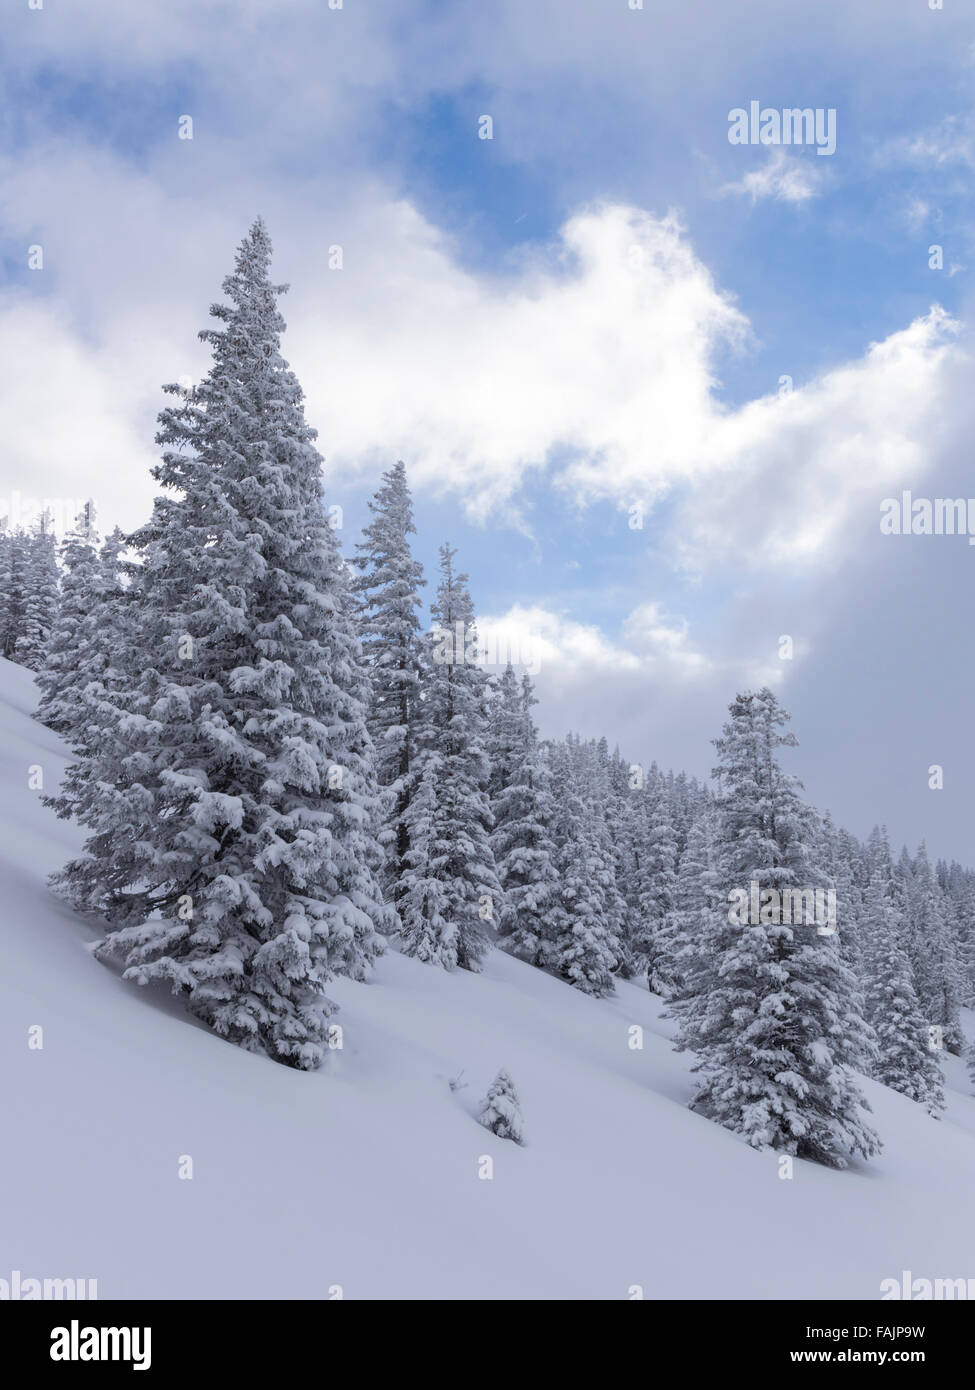 Snow-covered fir trees in a forest on a mountain slope in winter. Schächental, Canton of Uri, central Switzerland. - Stock Image